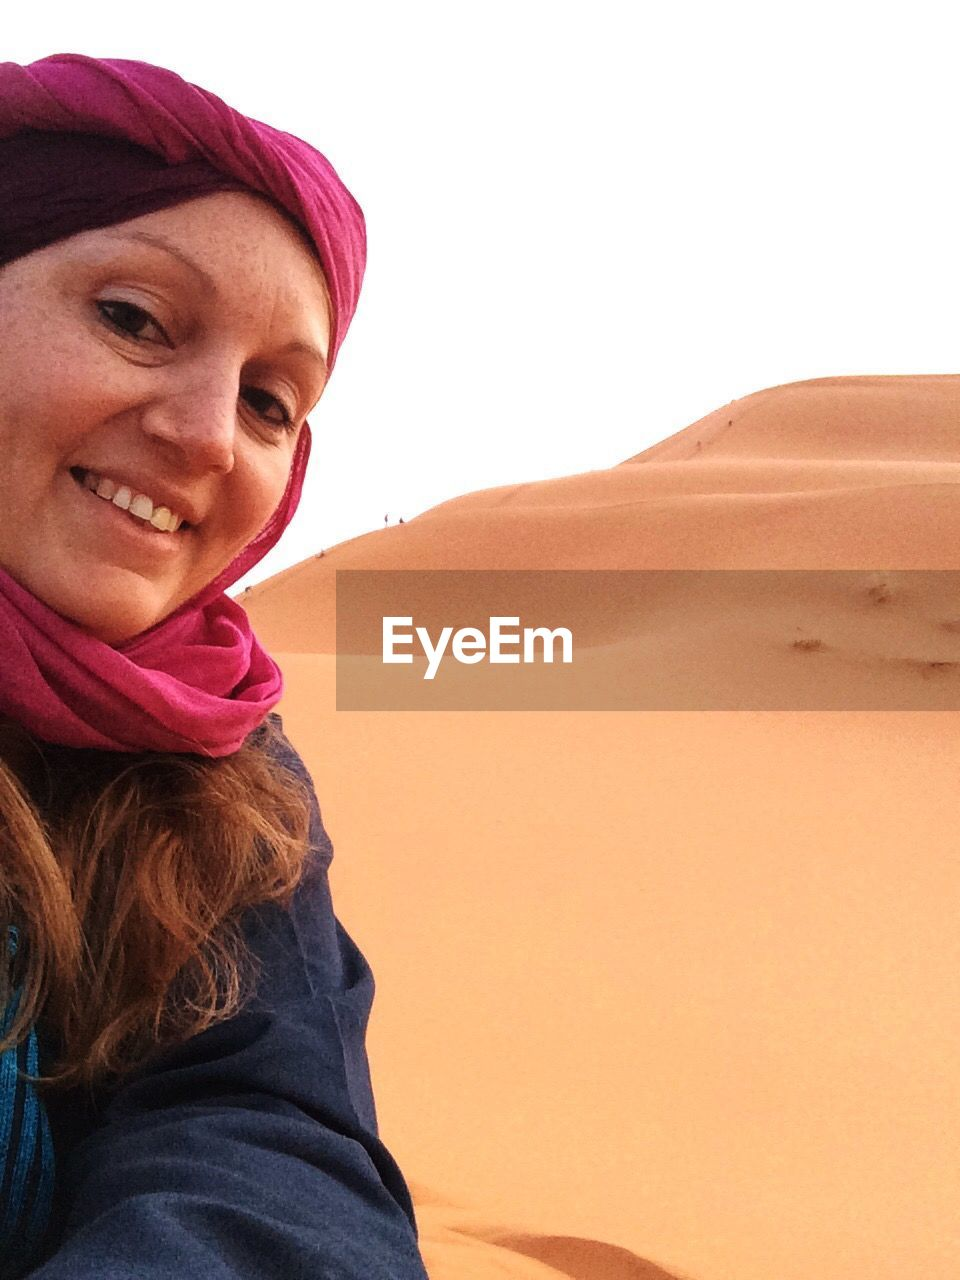 sand, one person, real people, sand dune, desert, nature, outdoors, smiling, day, sky, close-up, people